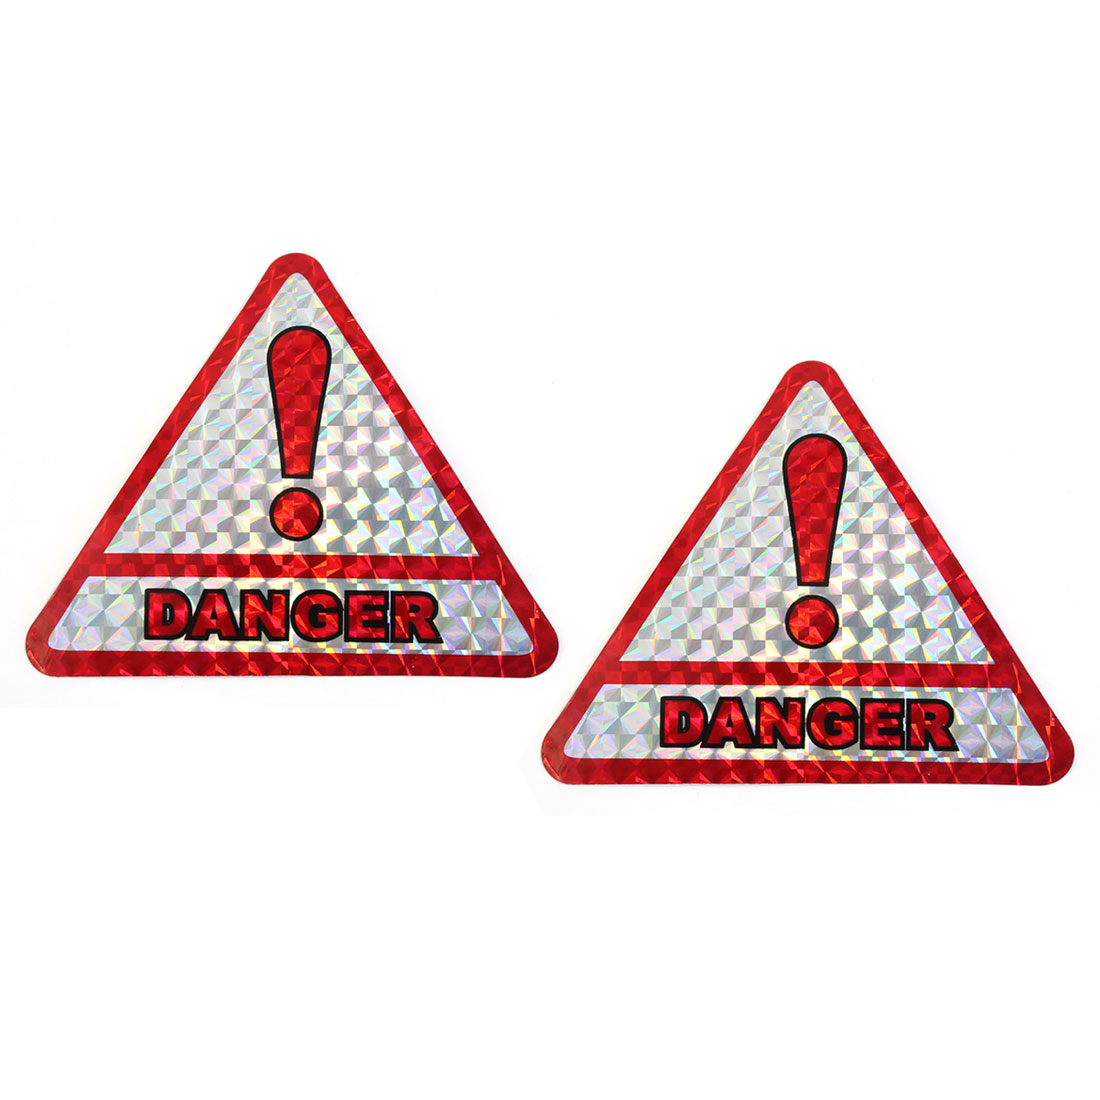 Red DANGER Print Self-adhesive Reflective Sticker Decal Car Exterior Decor 2 Pcs